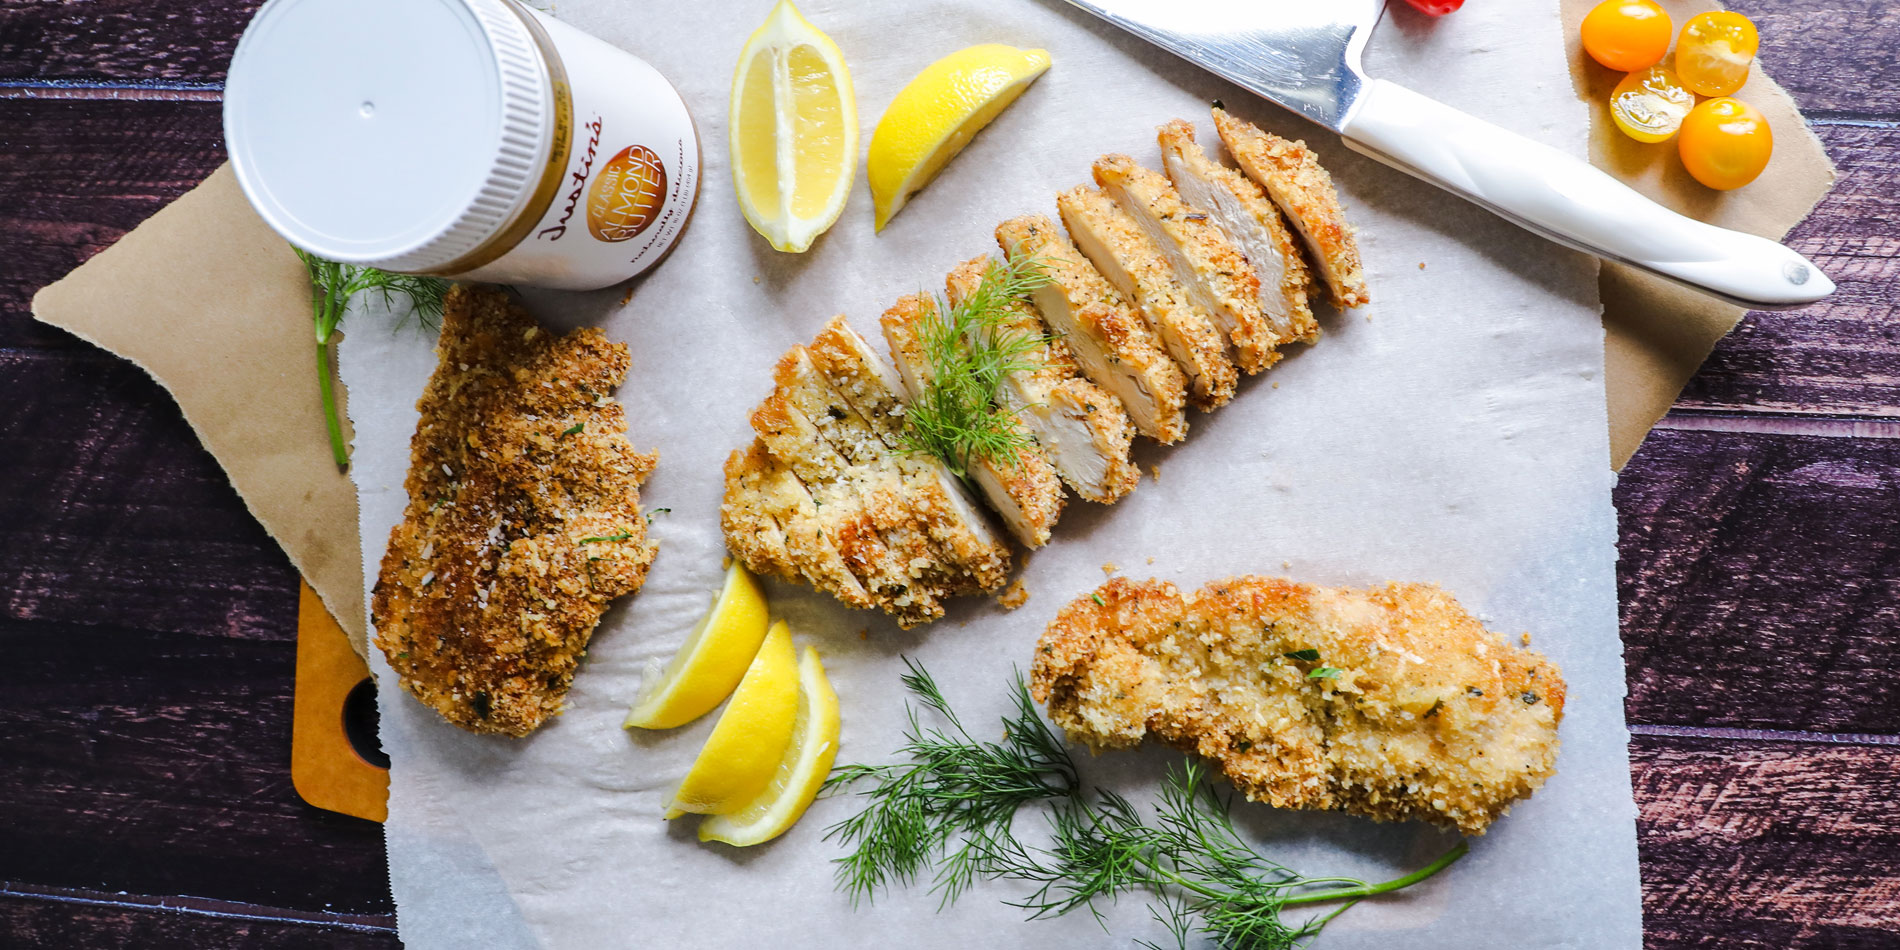 Paleo Almond Butter Crusted Chicken on parchment papers with cut baby tomatoes and lemon slices on a wooden serving tray